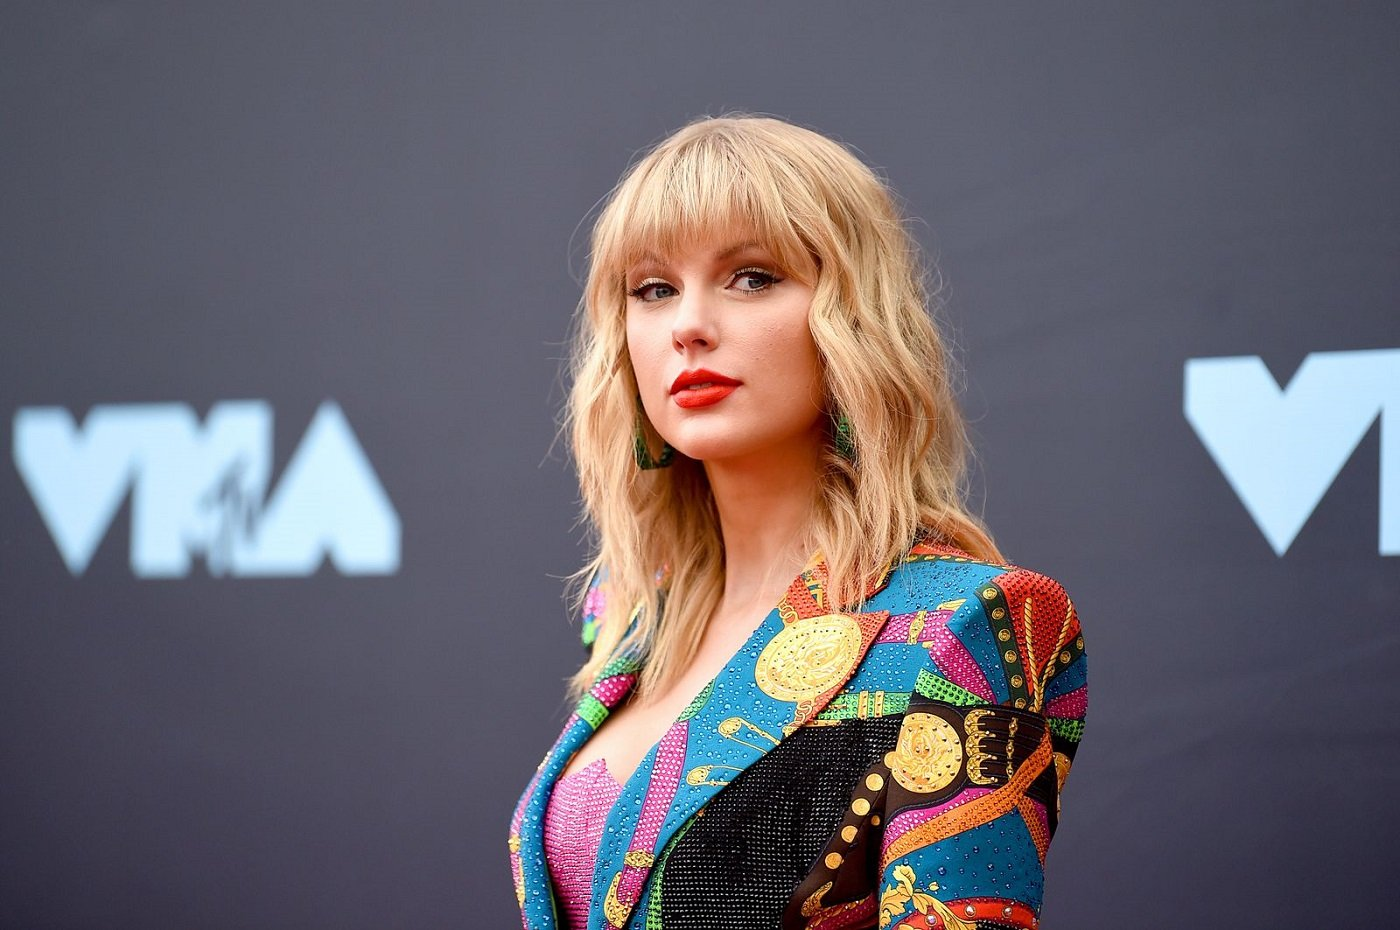 Taylor Swift at the MTV Video Music Awards on August 26, 2019, in Newark, New Jersey | Photo: Jamie McCarthy/Getty Images